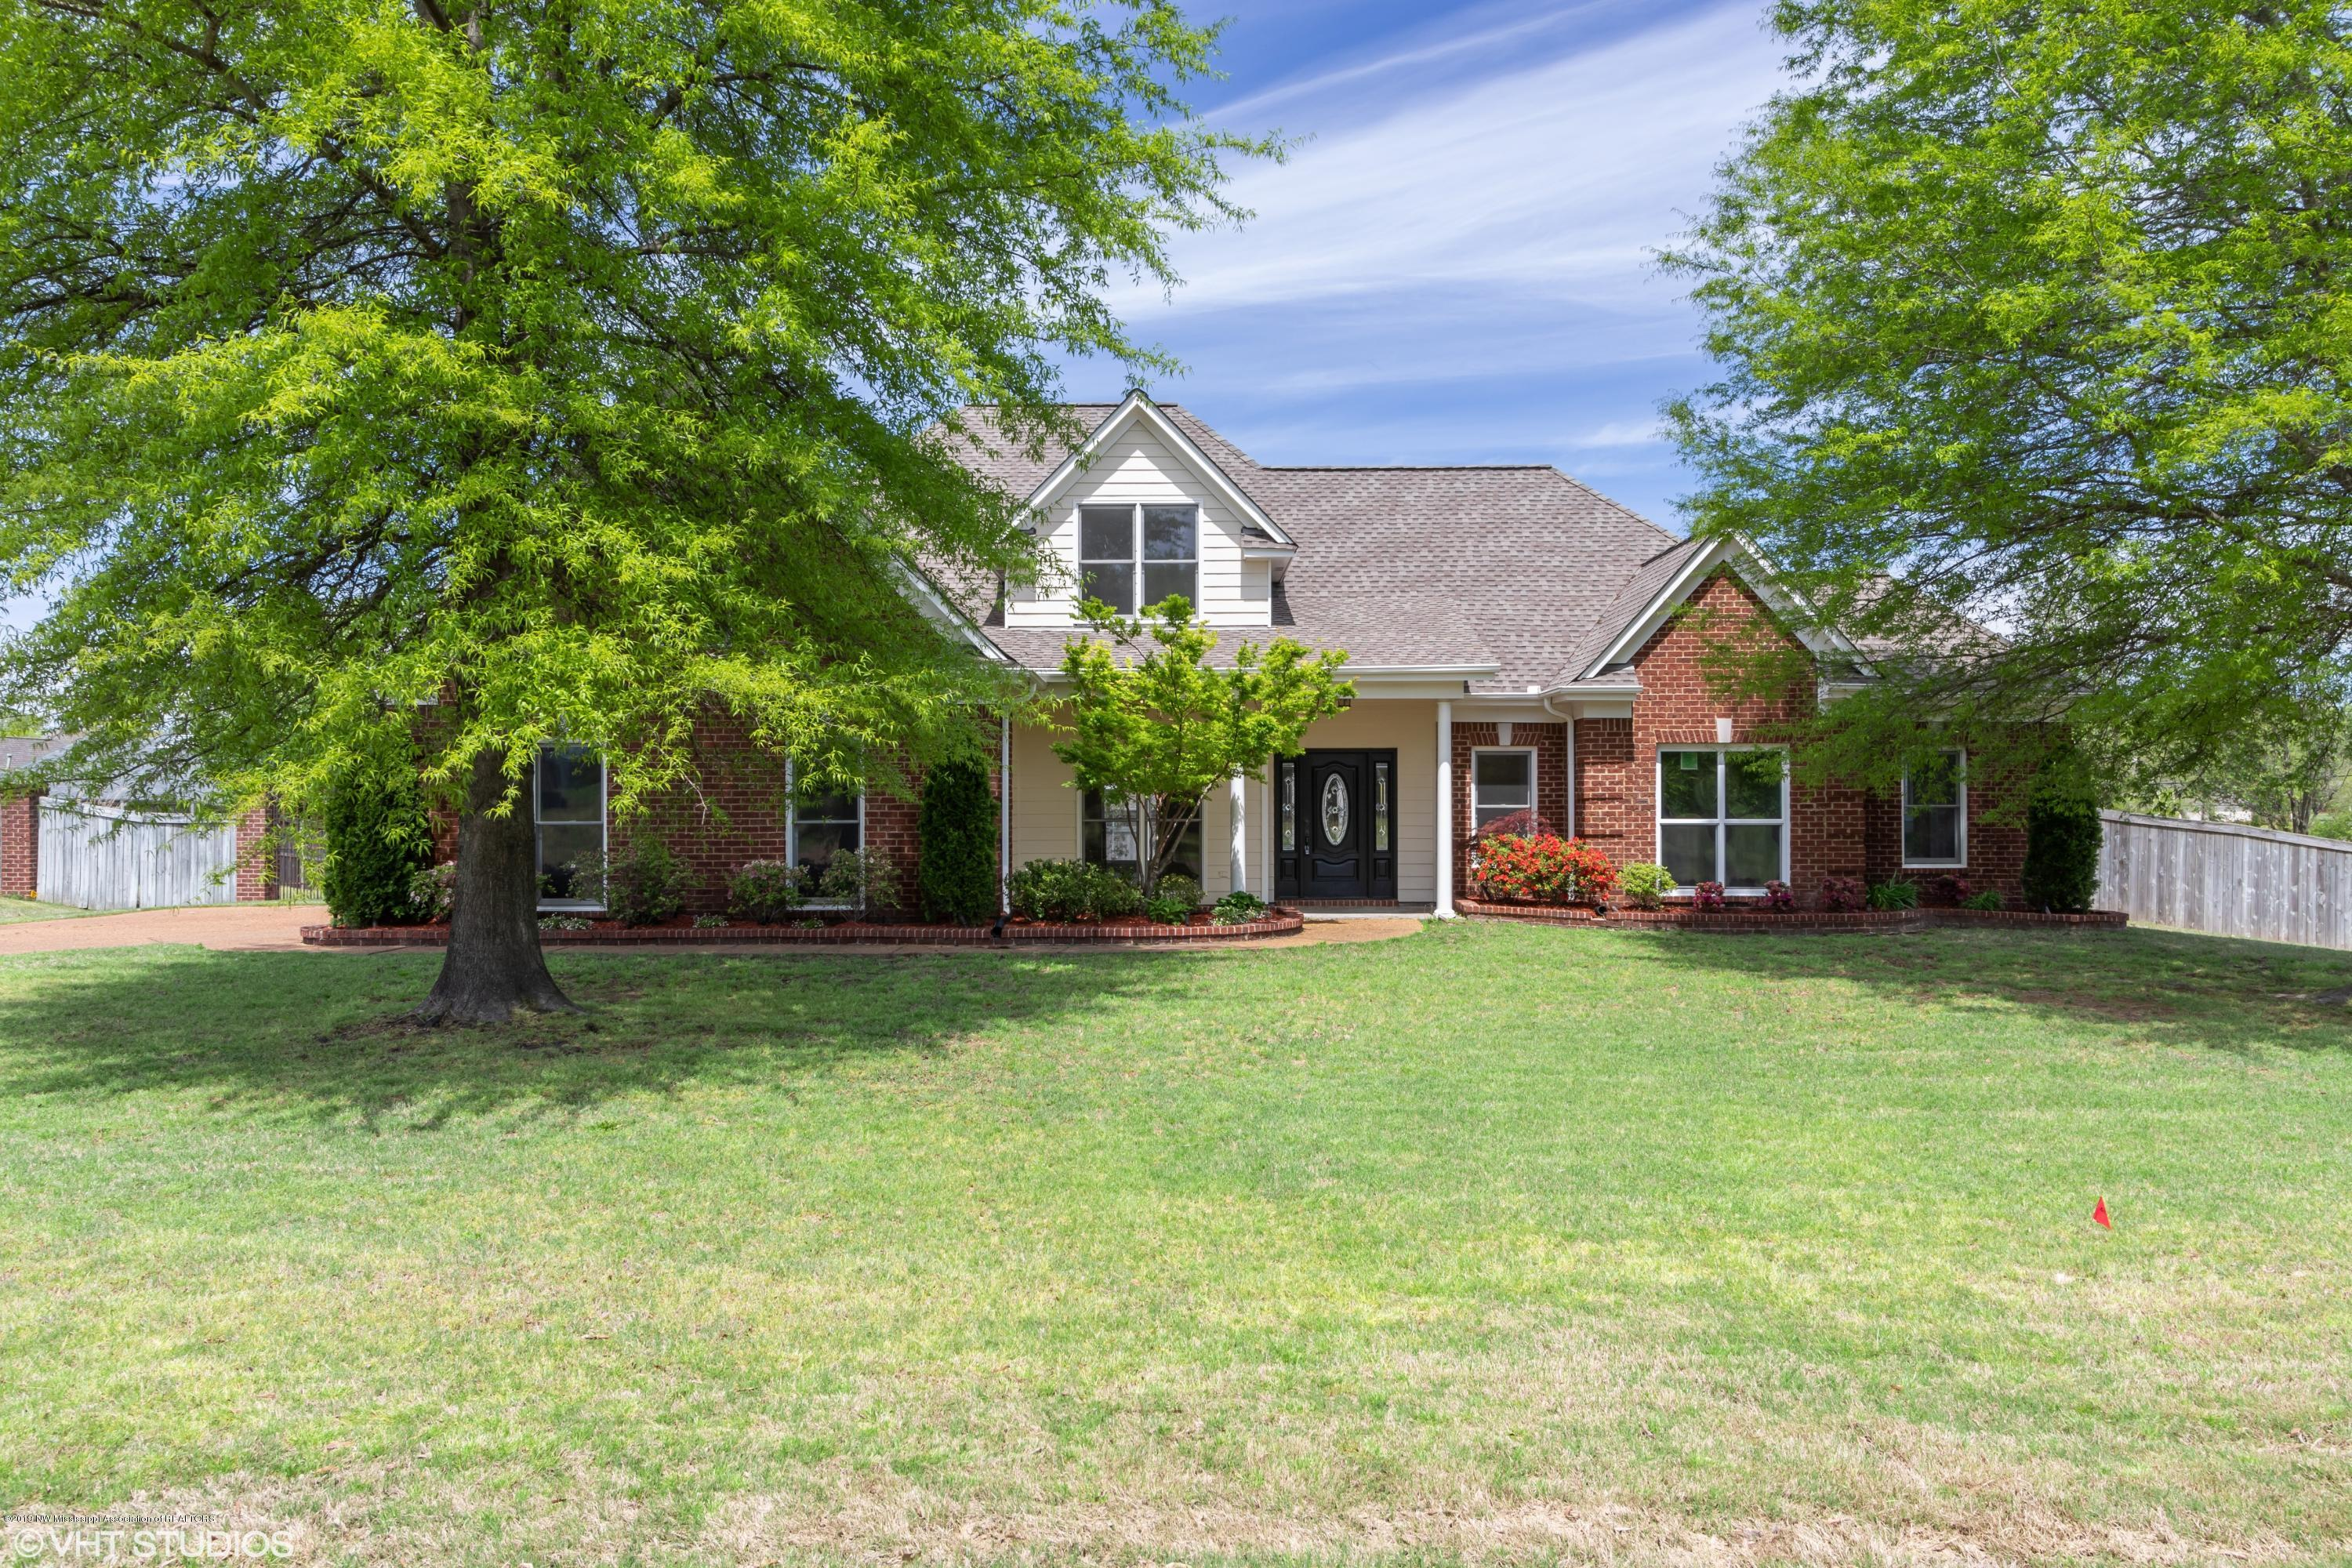 4980 Bobo Place, Olive Branch in DeSoto County, MS 38654 Home for Sale